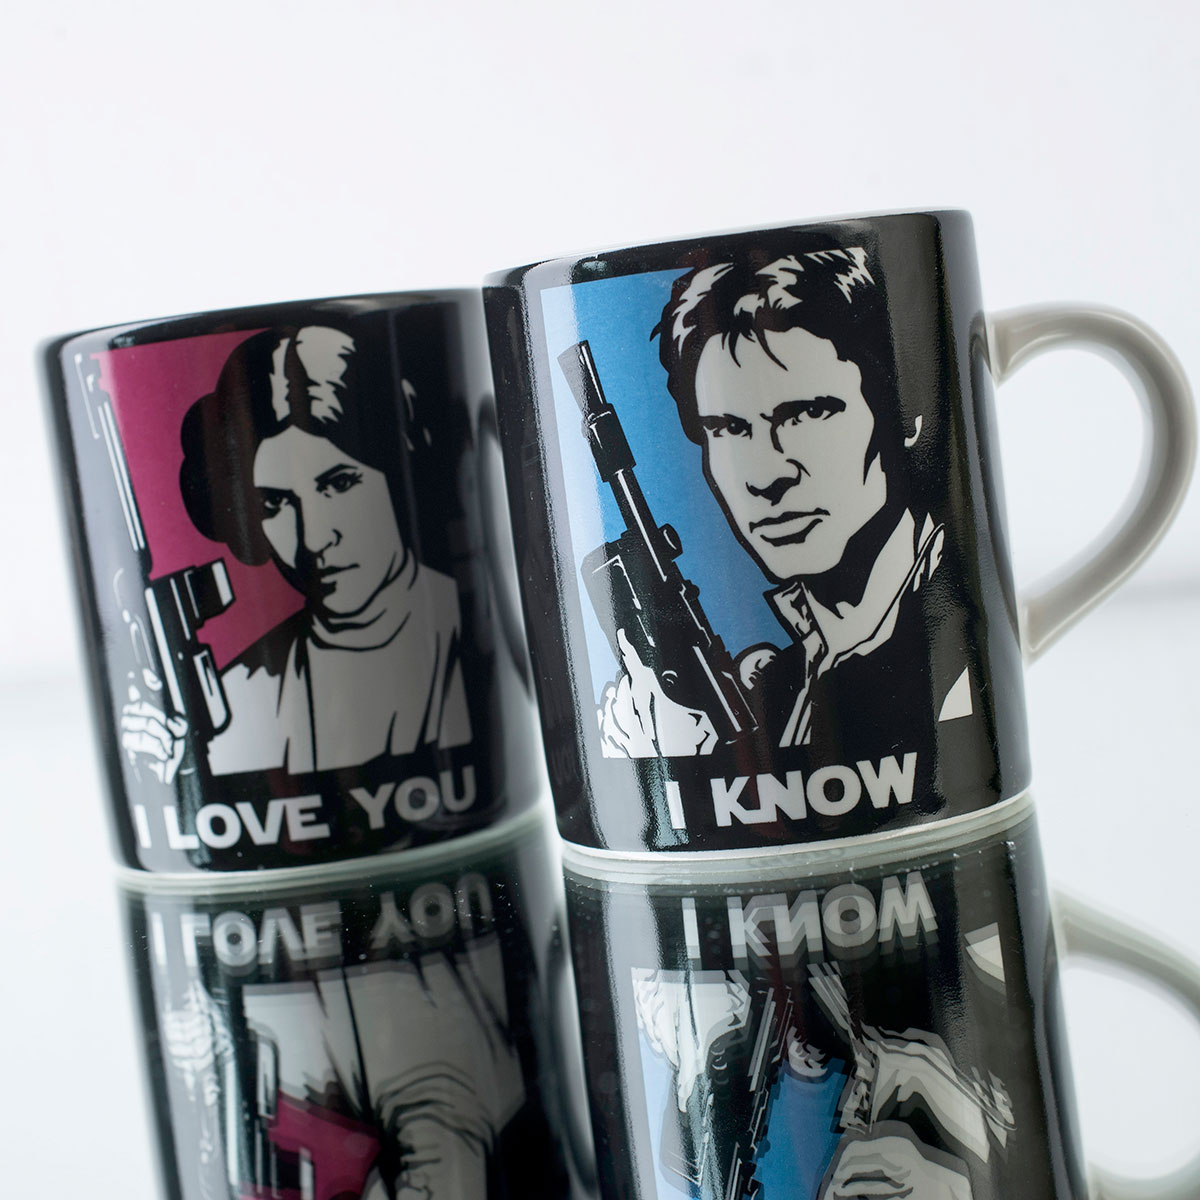 Star Wars® Mini Mug Set of 2 I Love You I Know!